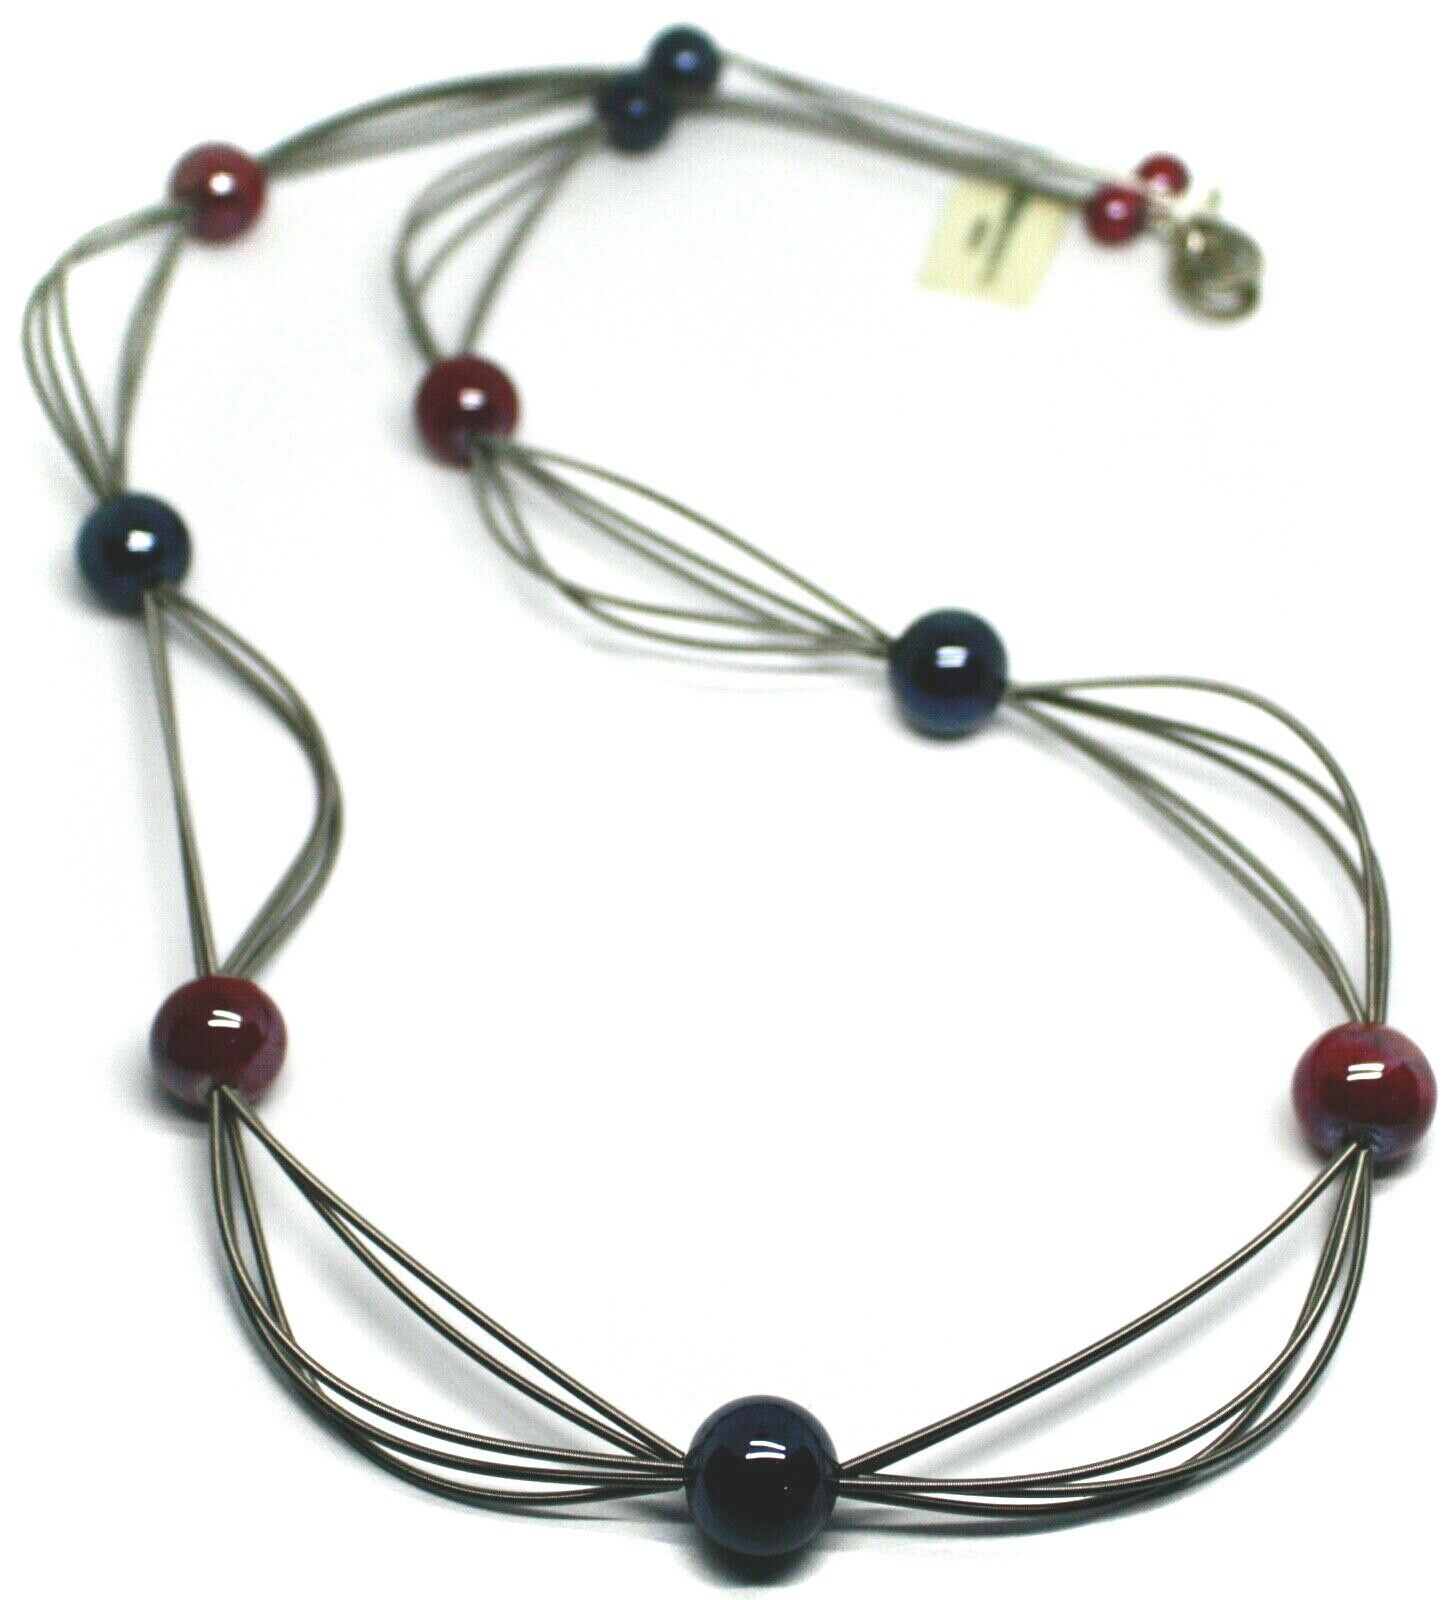 "MULTI WIRES NECKLACE RED BLUE BIG MURANO GLASS SPHERES, 90cm 35"" LONG, ITALY"